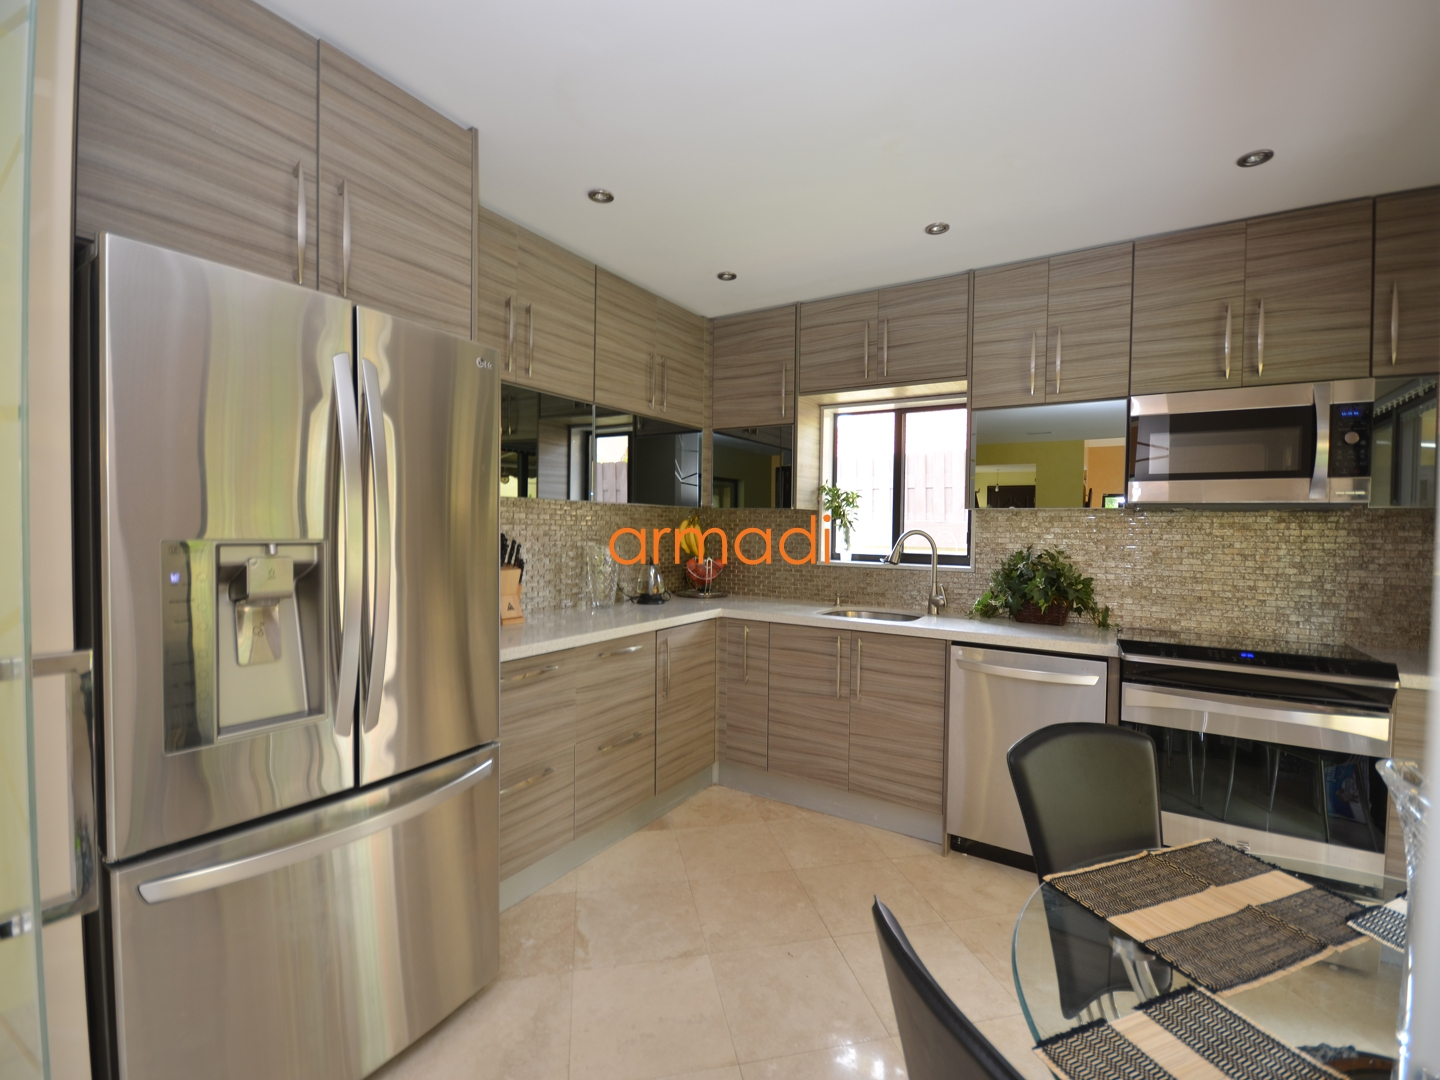 Custom Kitchens Miami | Armadi Casa